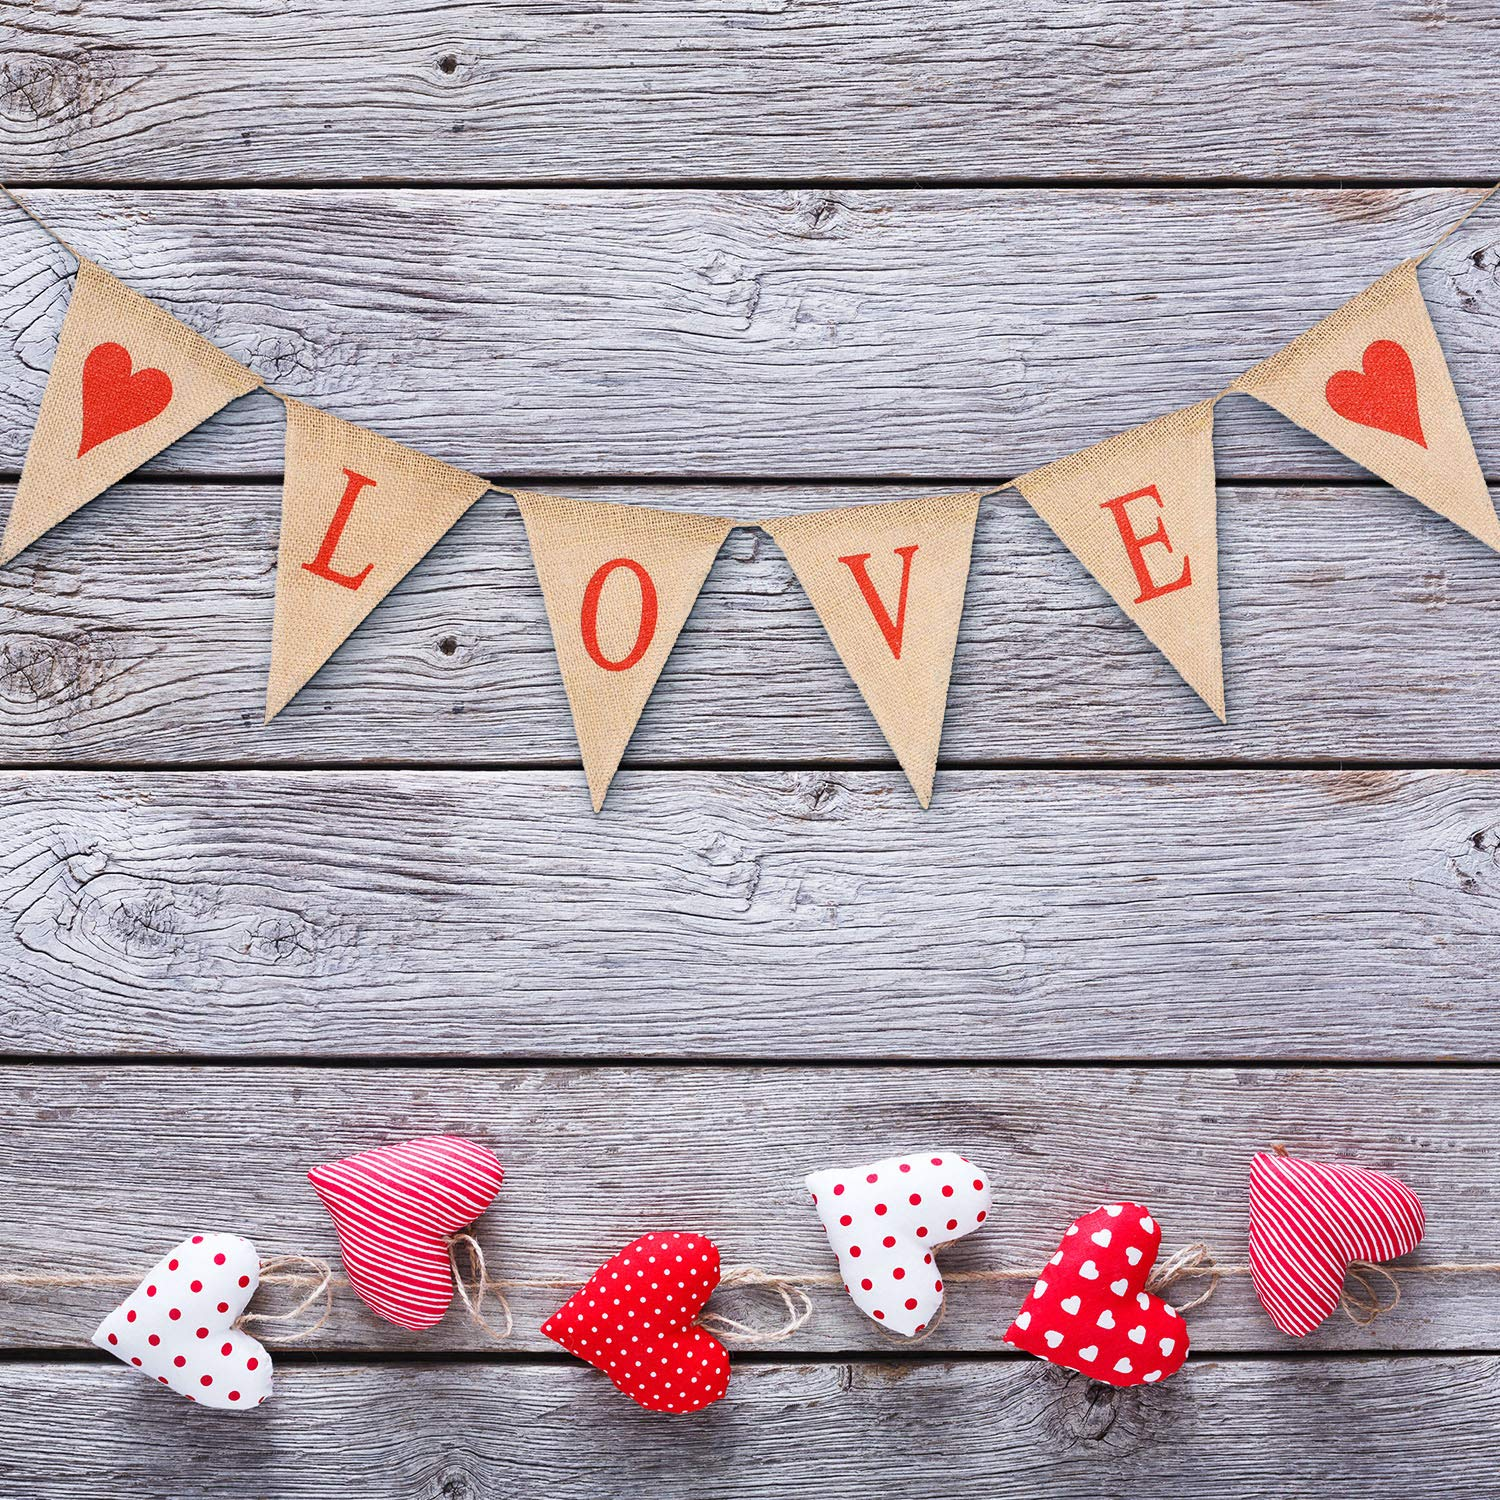 Blulu Love Bunting Banner Valentines Day Burlap Banner and 6 Pieces Paper Pom Poms Hanging Flower Ball for Valentines Day Wedding Party Supply